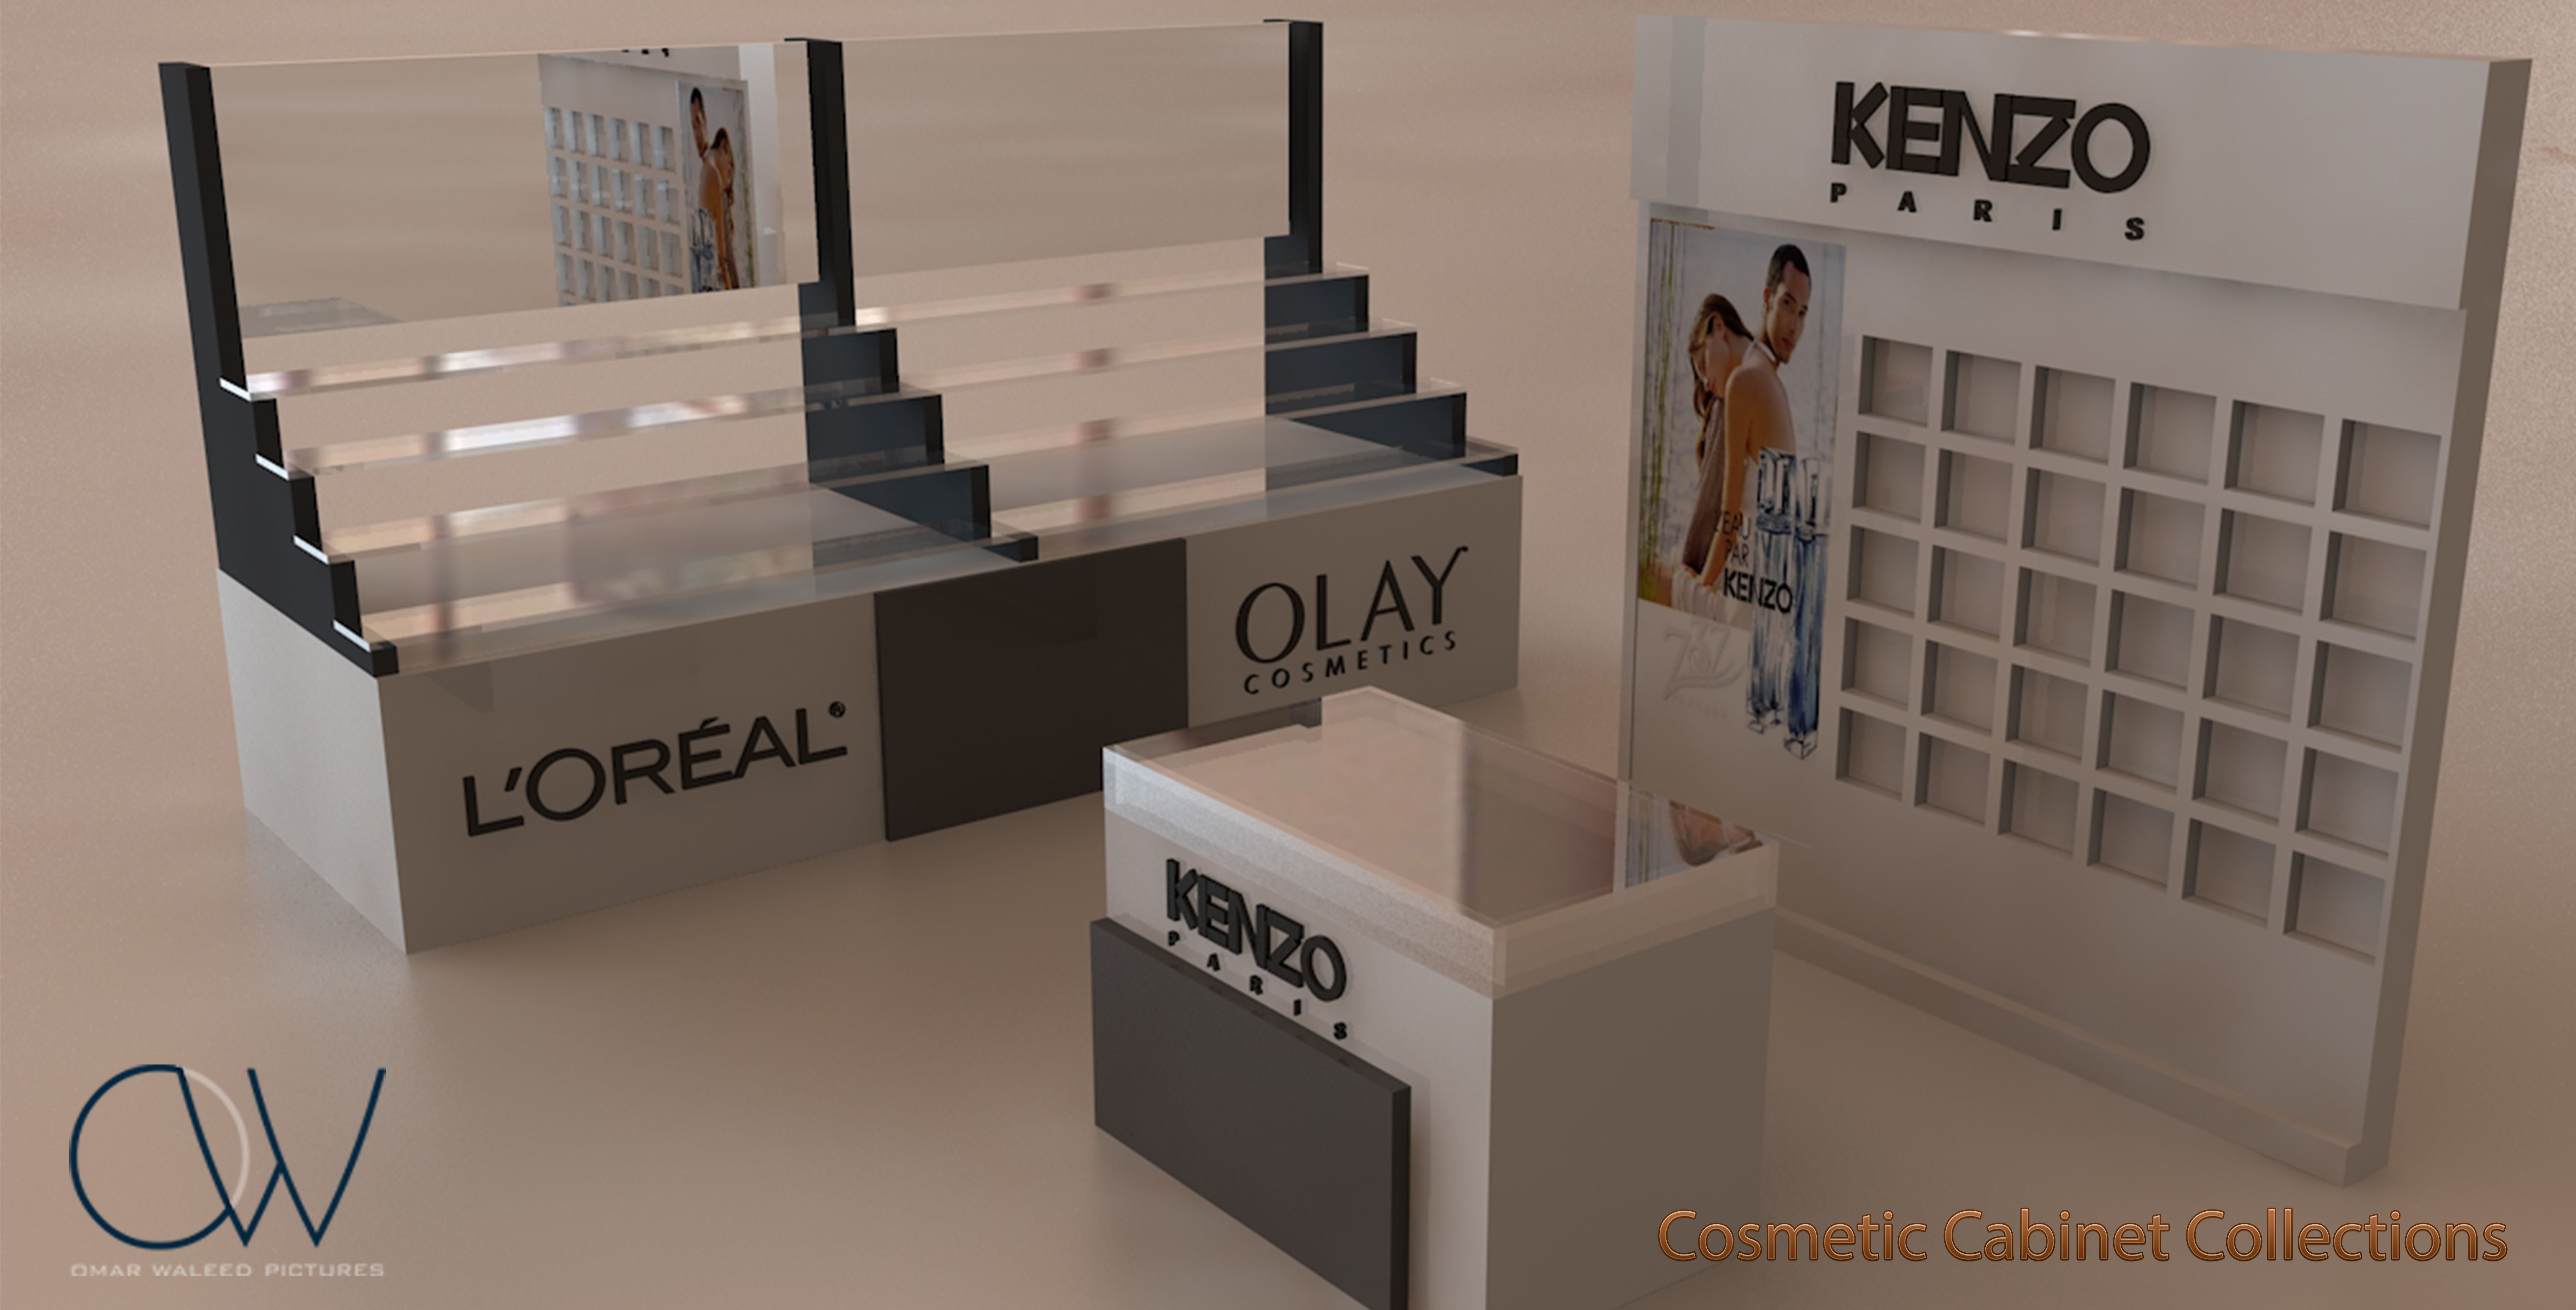 Cosmetic Cabinet Collections